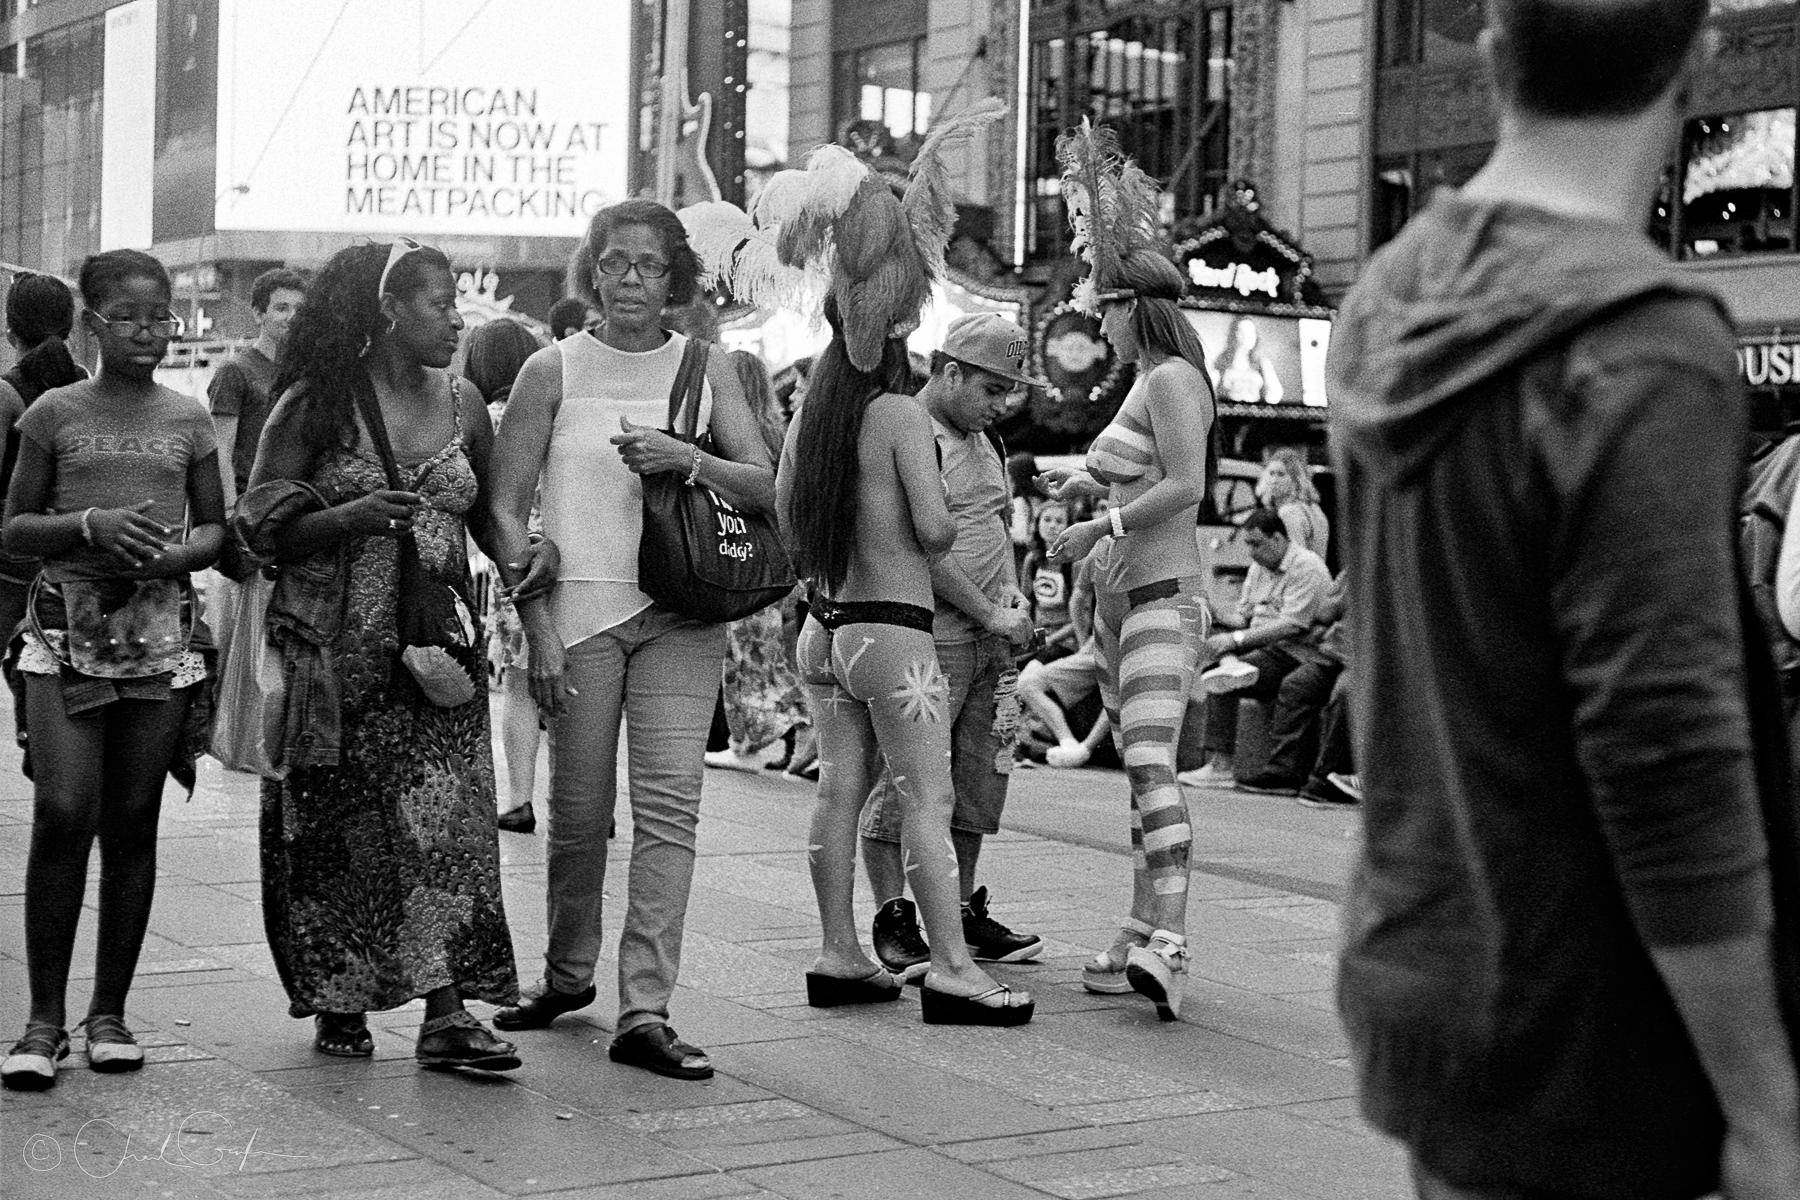 Desnudas Working in Times Square by Chad Gayle (Image)